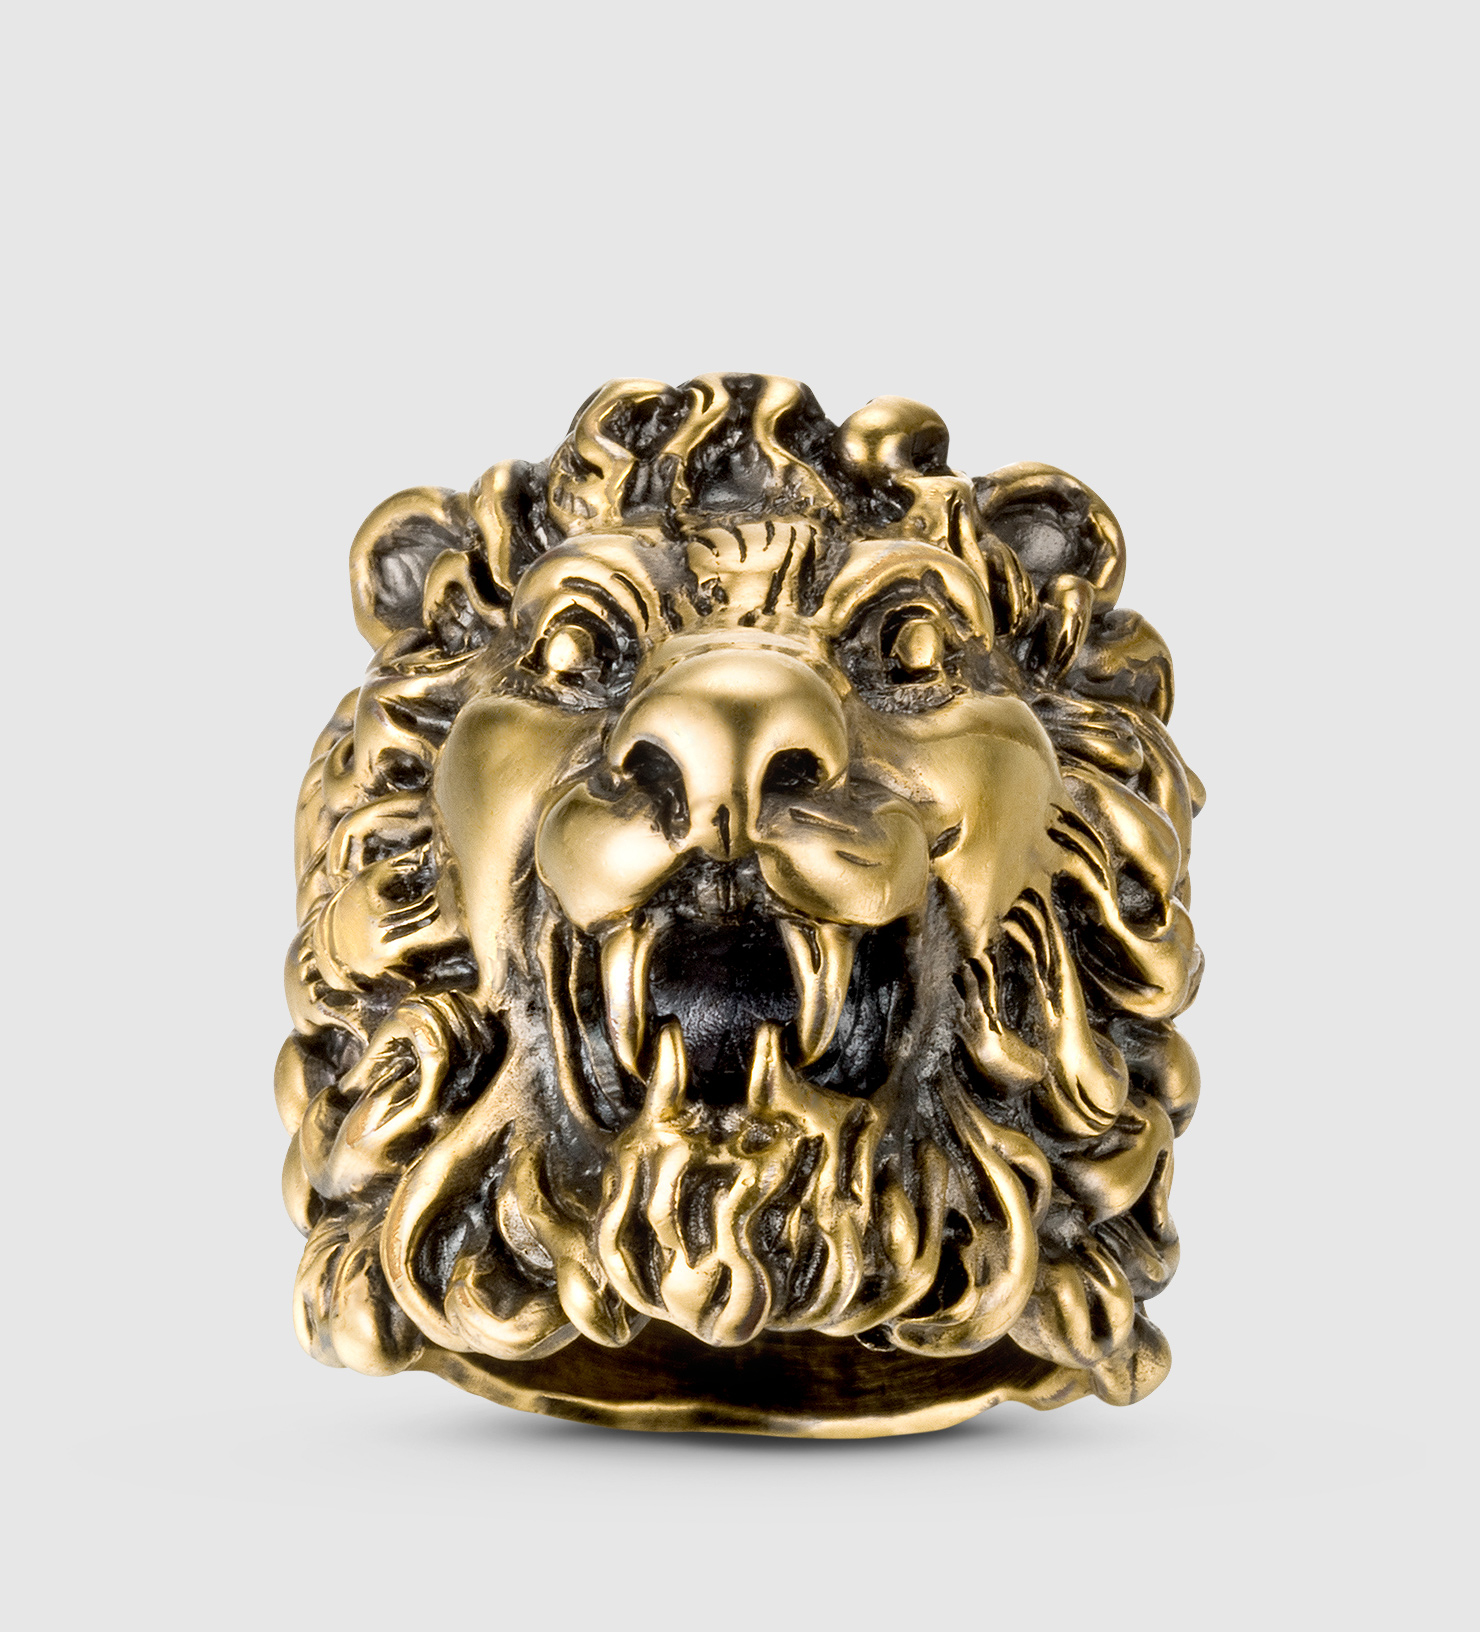 Lyst Gucci Lion Head Ring in Metallic for Men